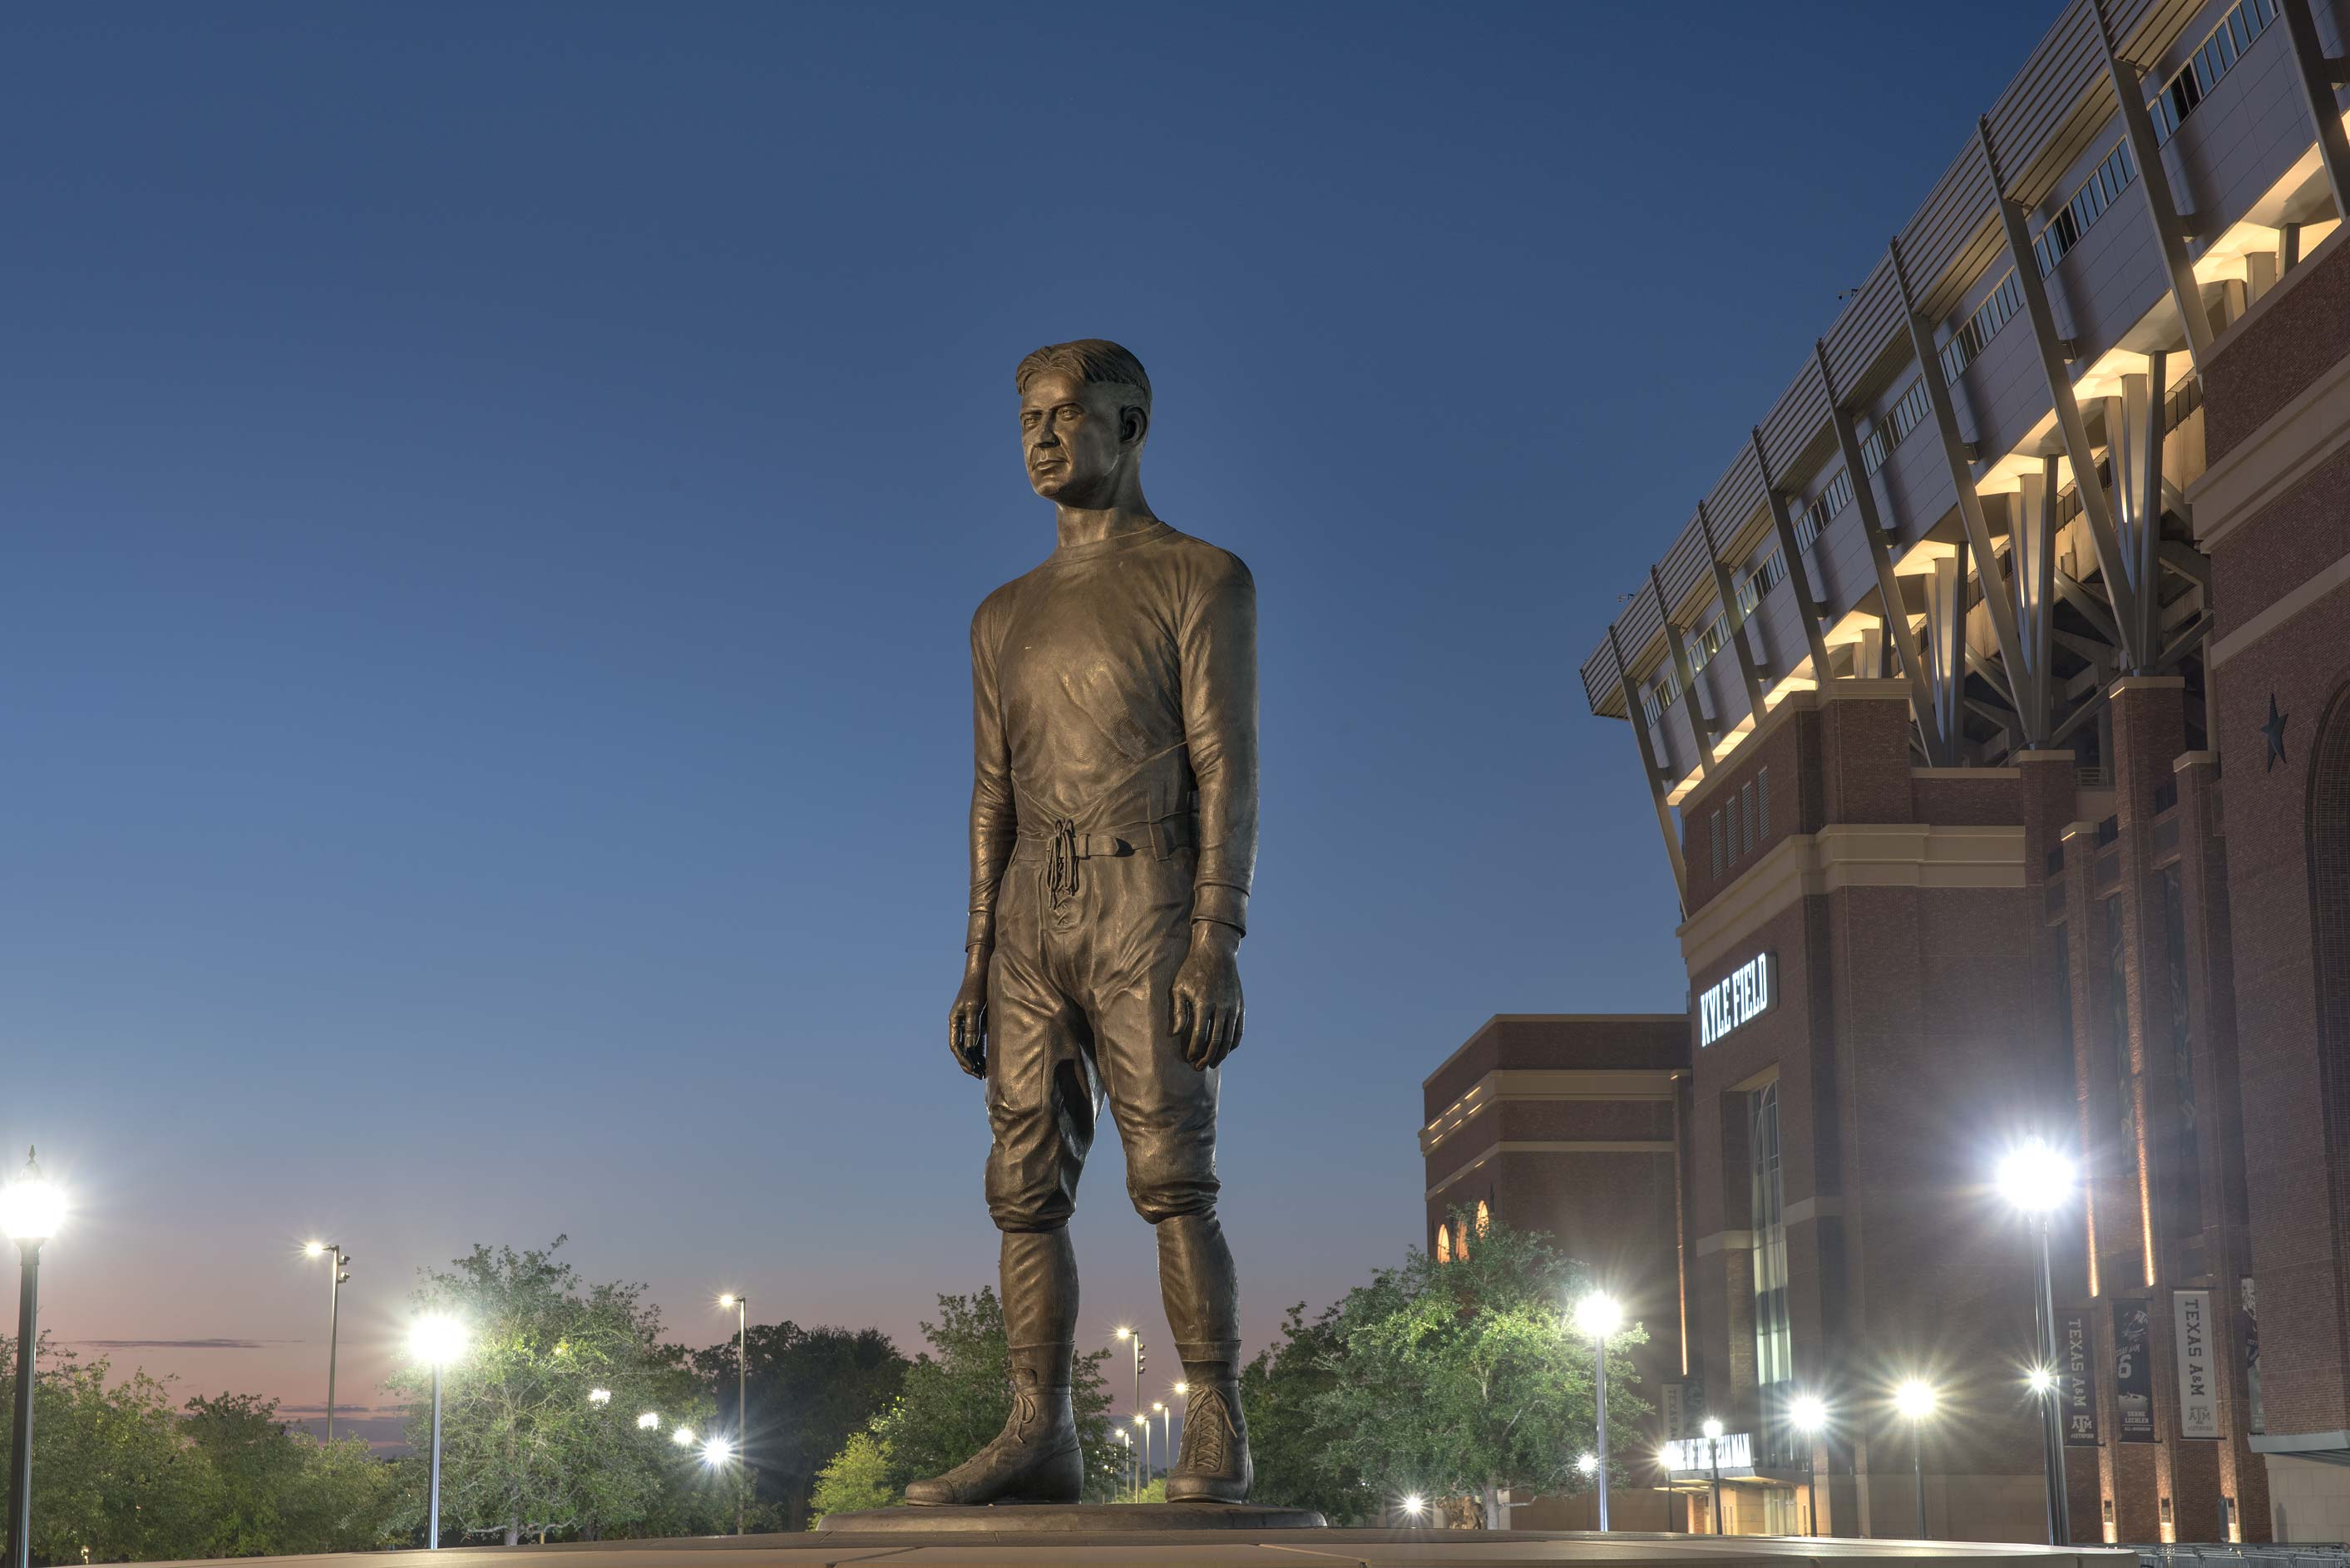 12th Man statue near Kyle Field on campus of Texas A&M University. College Station, Texas